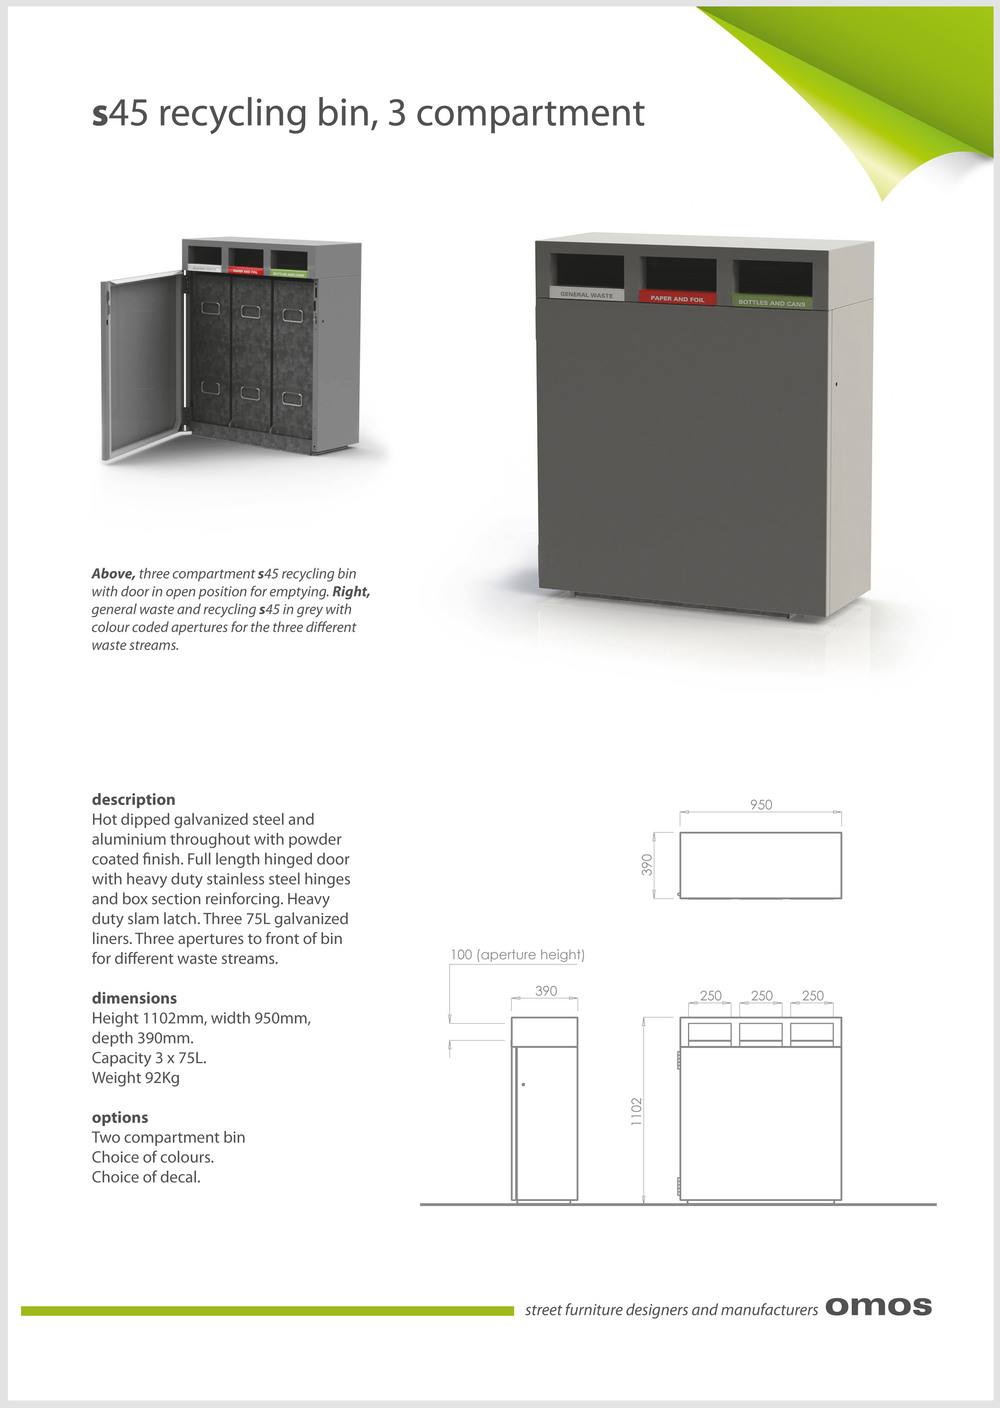 s45 recycling (3 compartment) data sheet.jpg